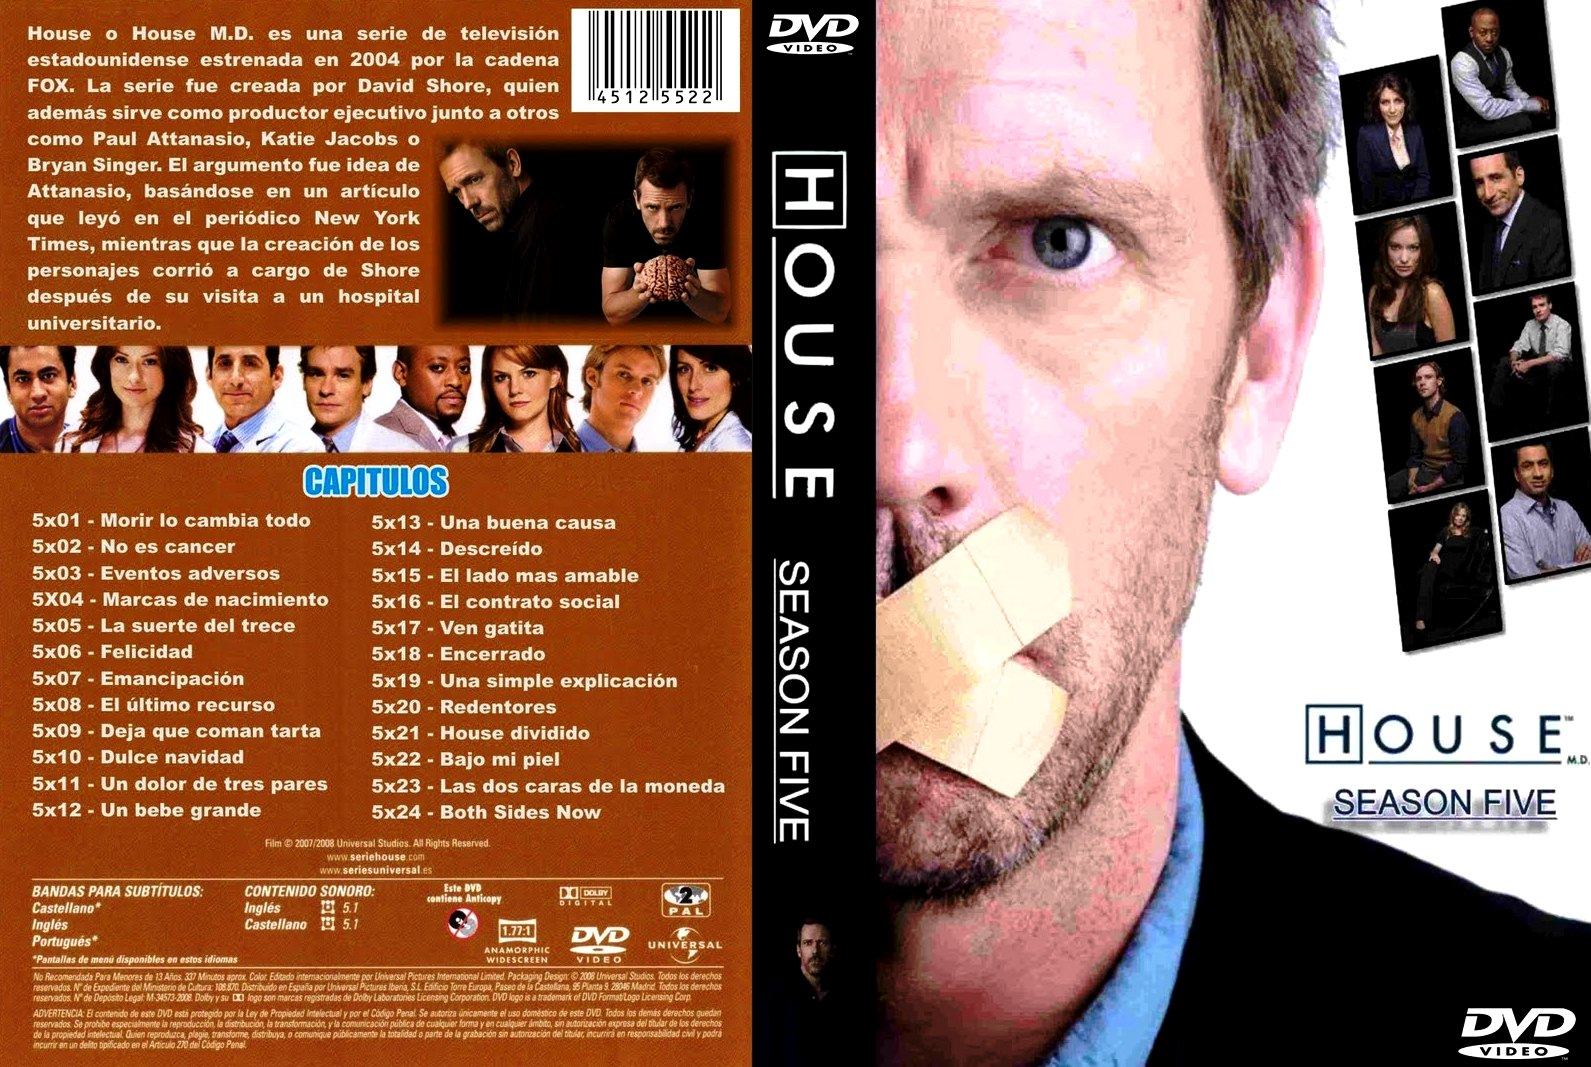 dr house dvd